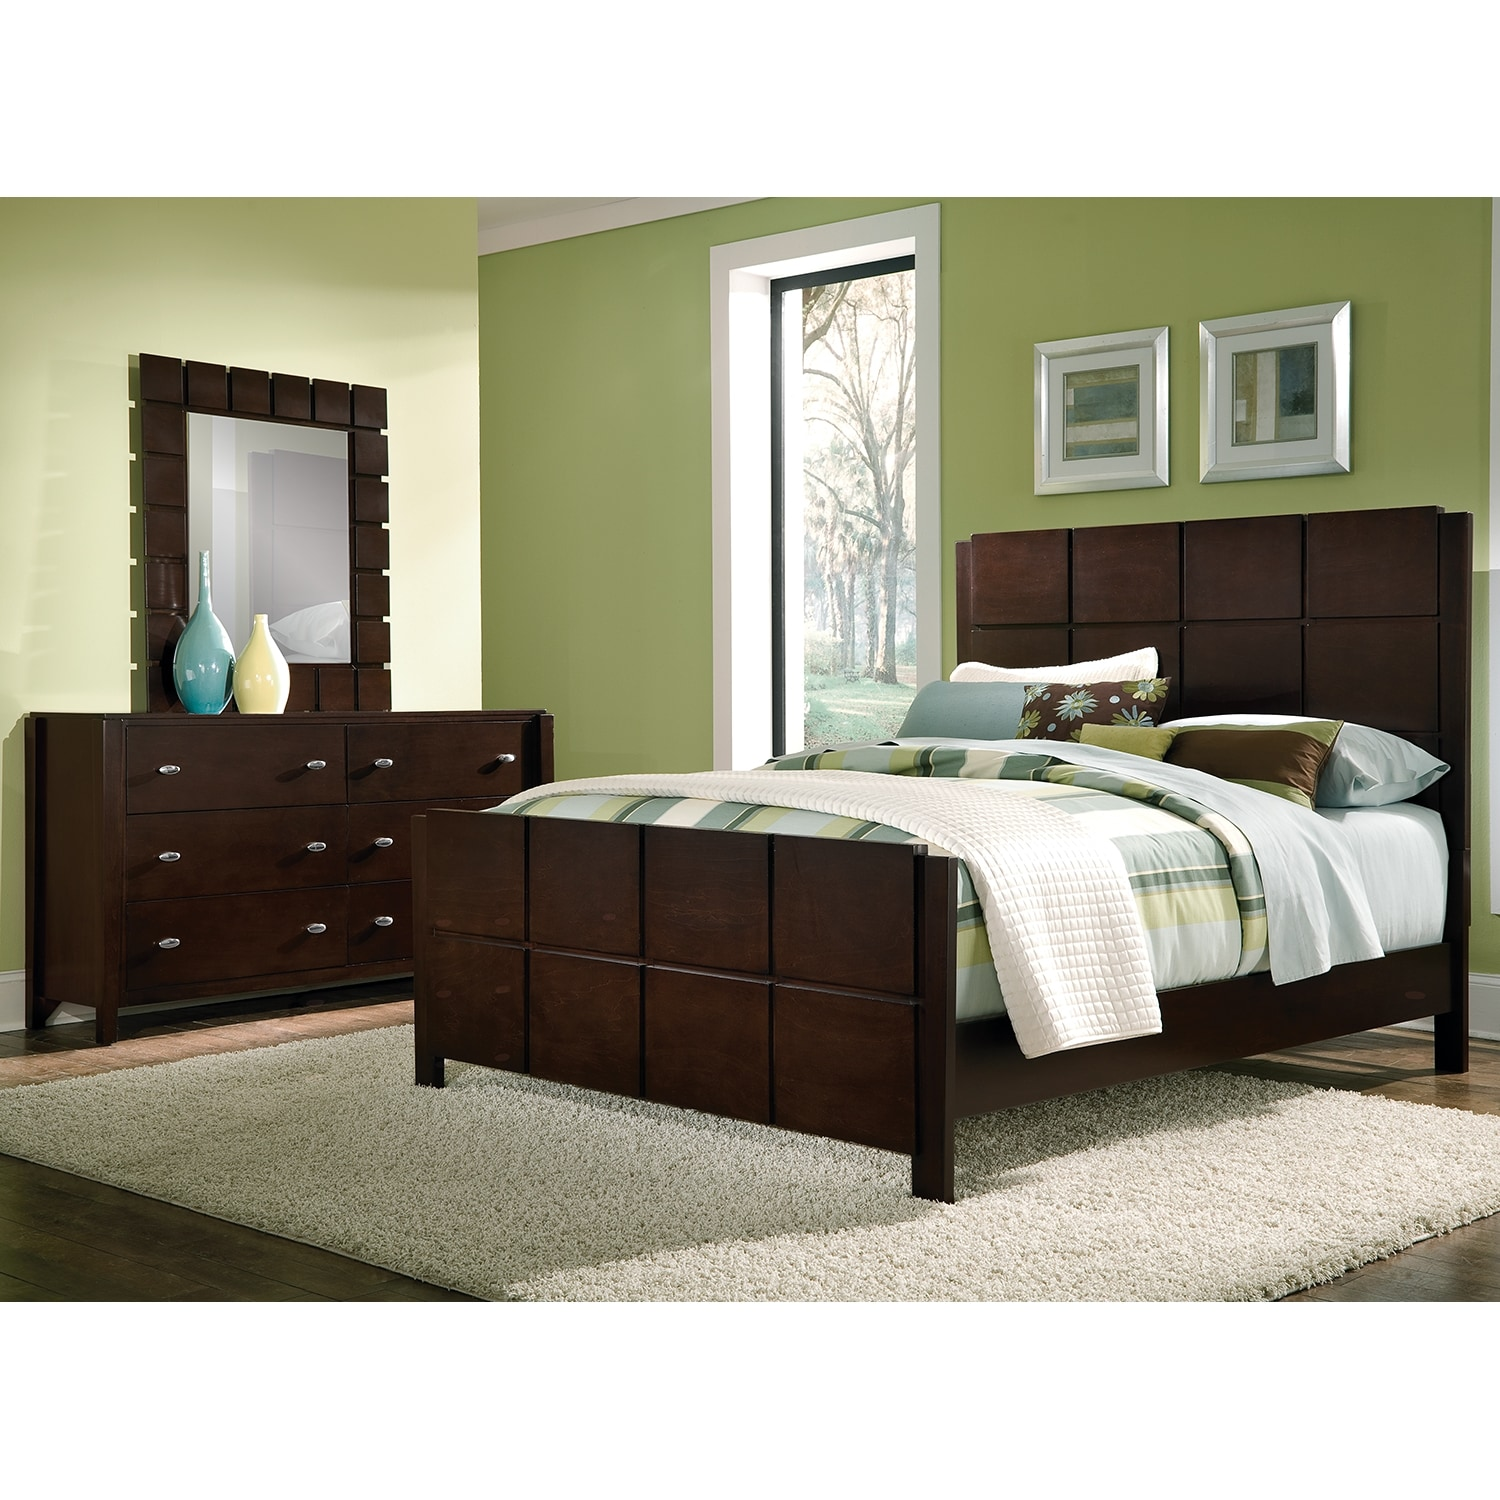 Mosaic 5 piece king bedroom set dark brown american for I need bedroom furniture